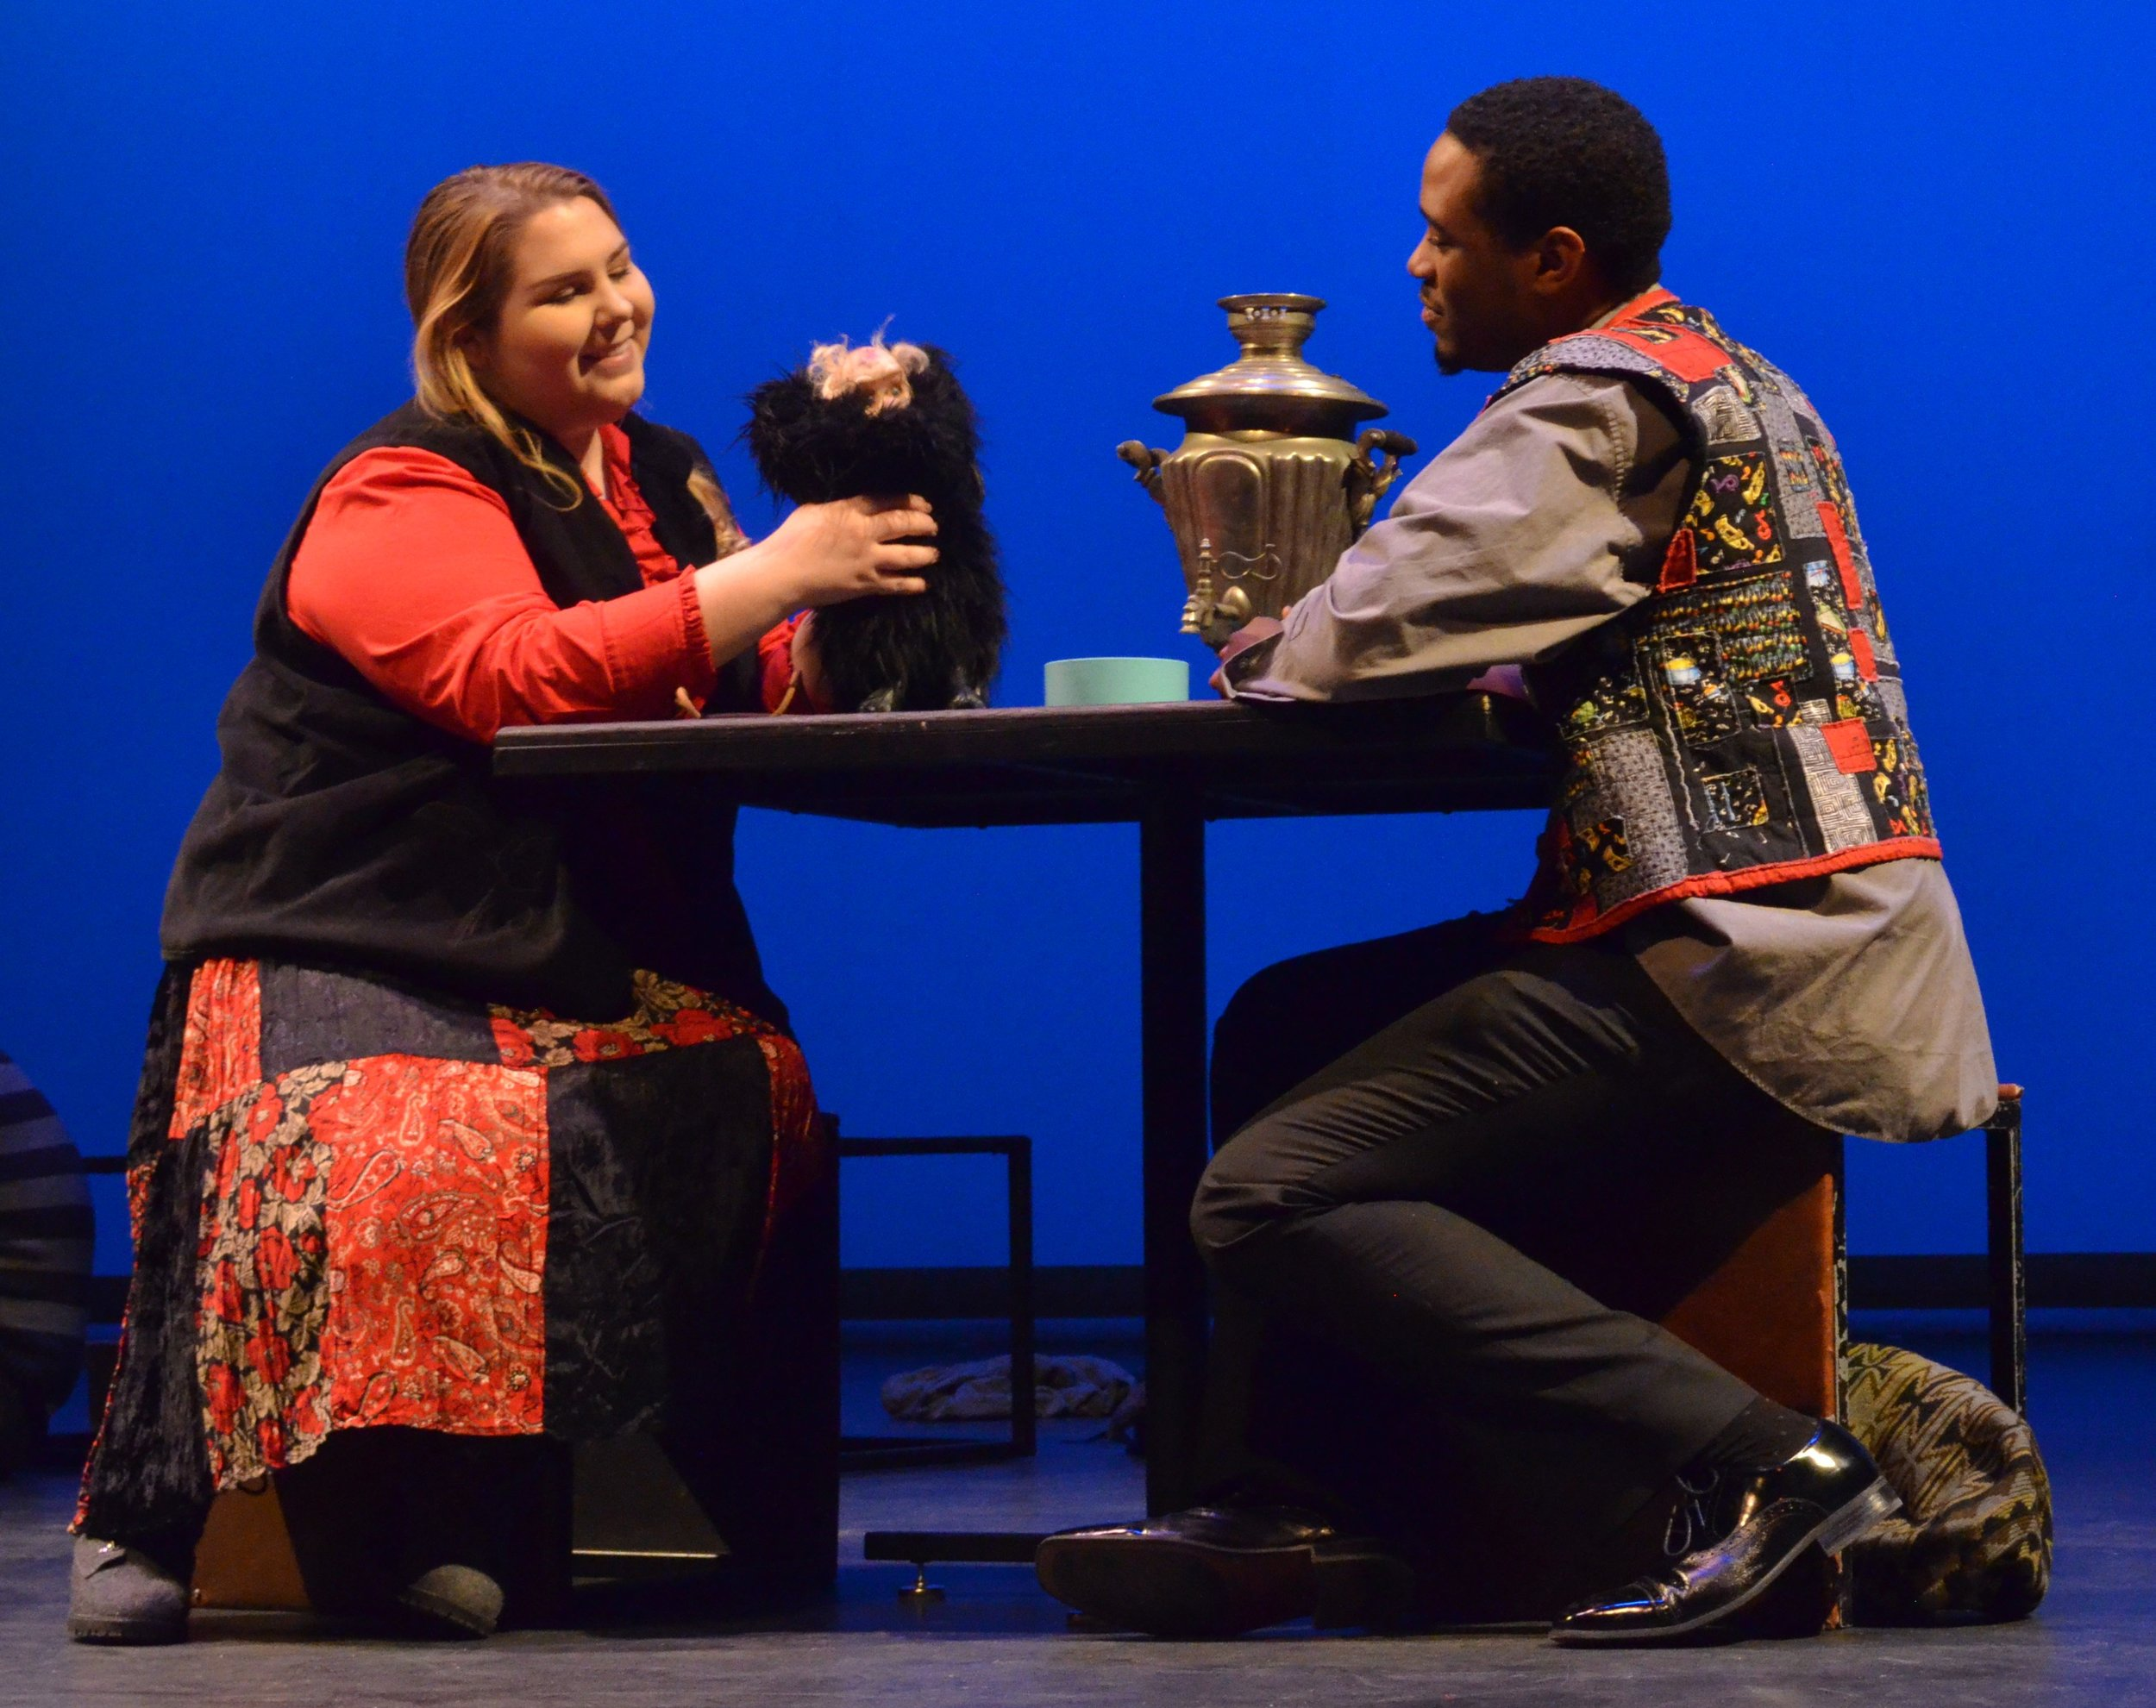 Sadie Cheslak and Dean Moore as Jane and John Doe with the puppet of Bi Ba Bo. Lighting design Alena Samoray